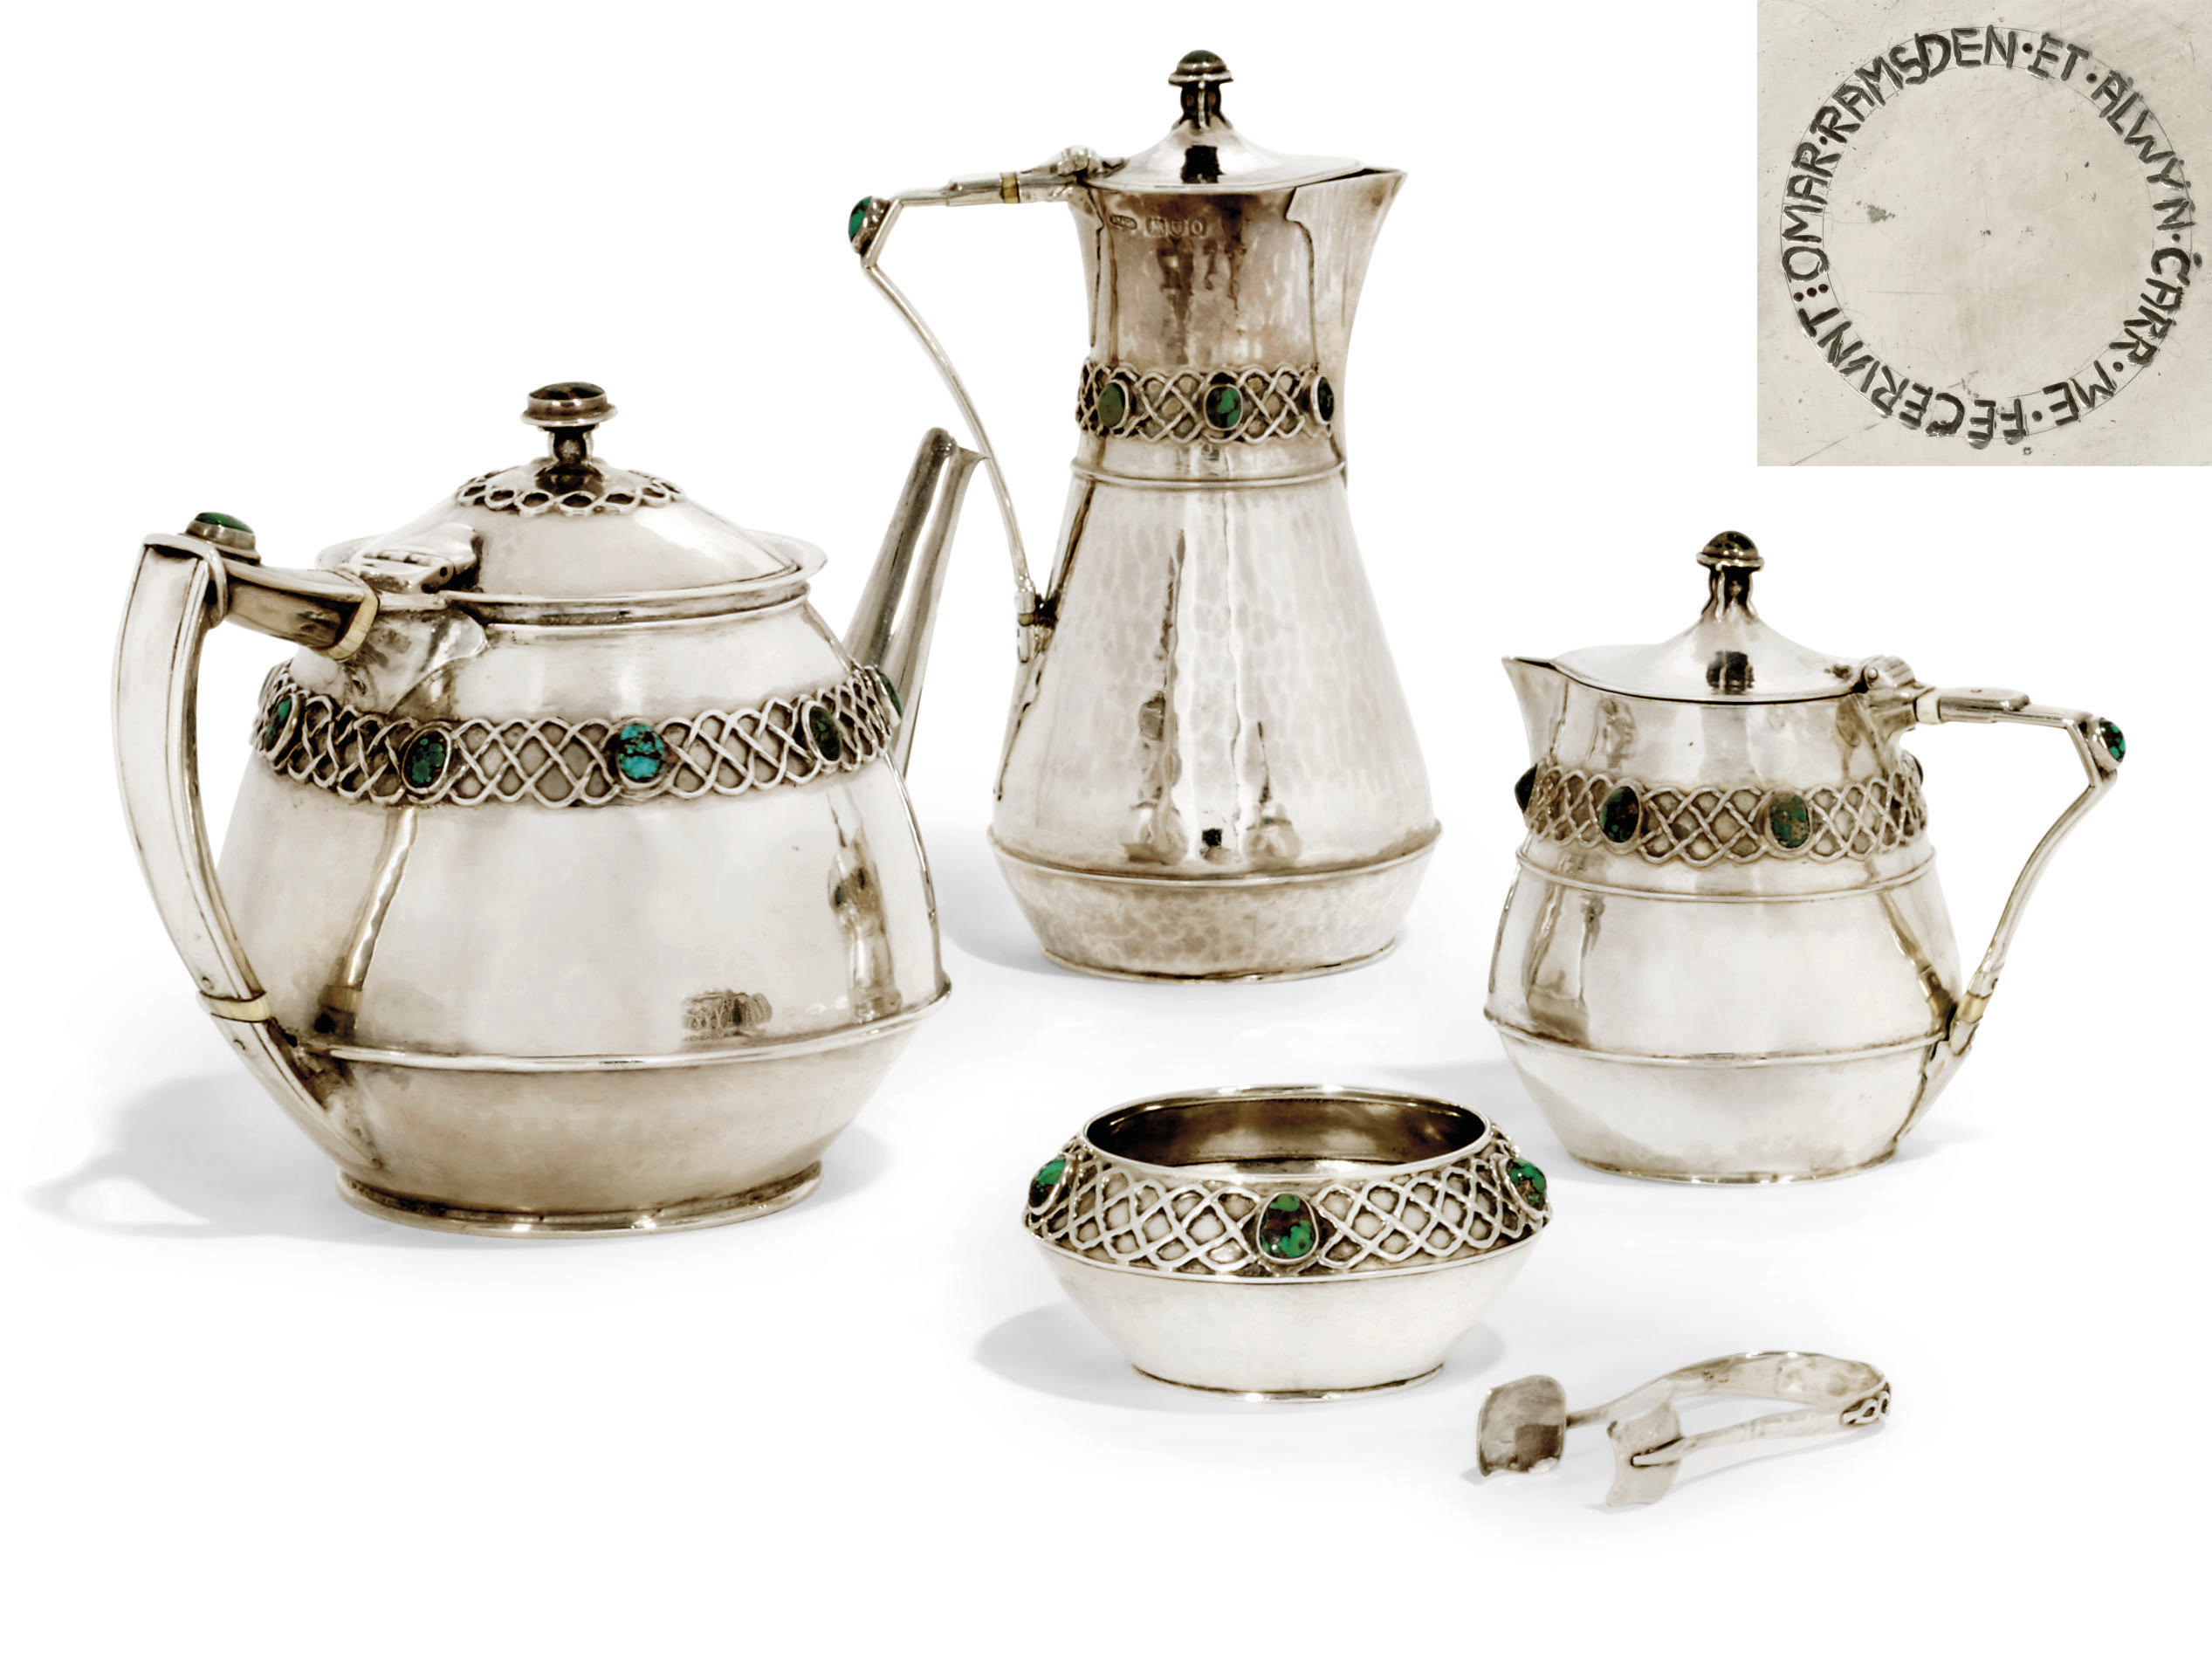 AN EDWARDIAN ARTS & CRAFTS FOUR-PIECE SILVER TEA SET